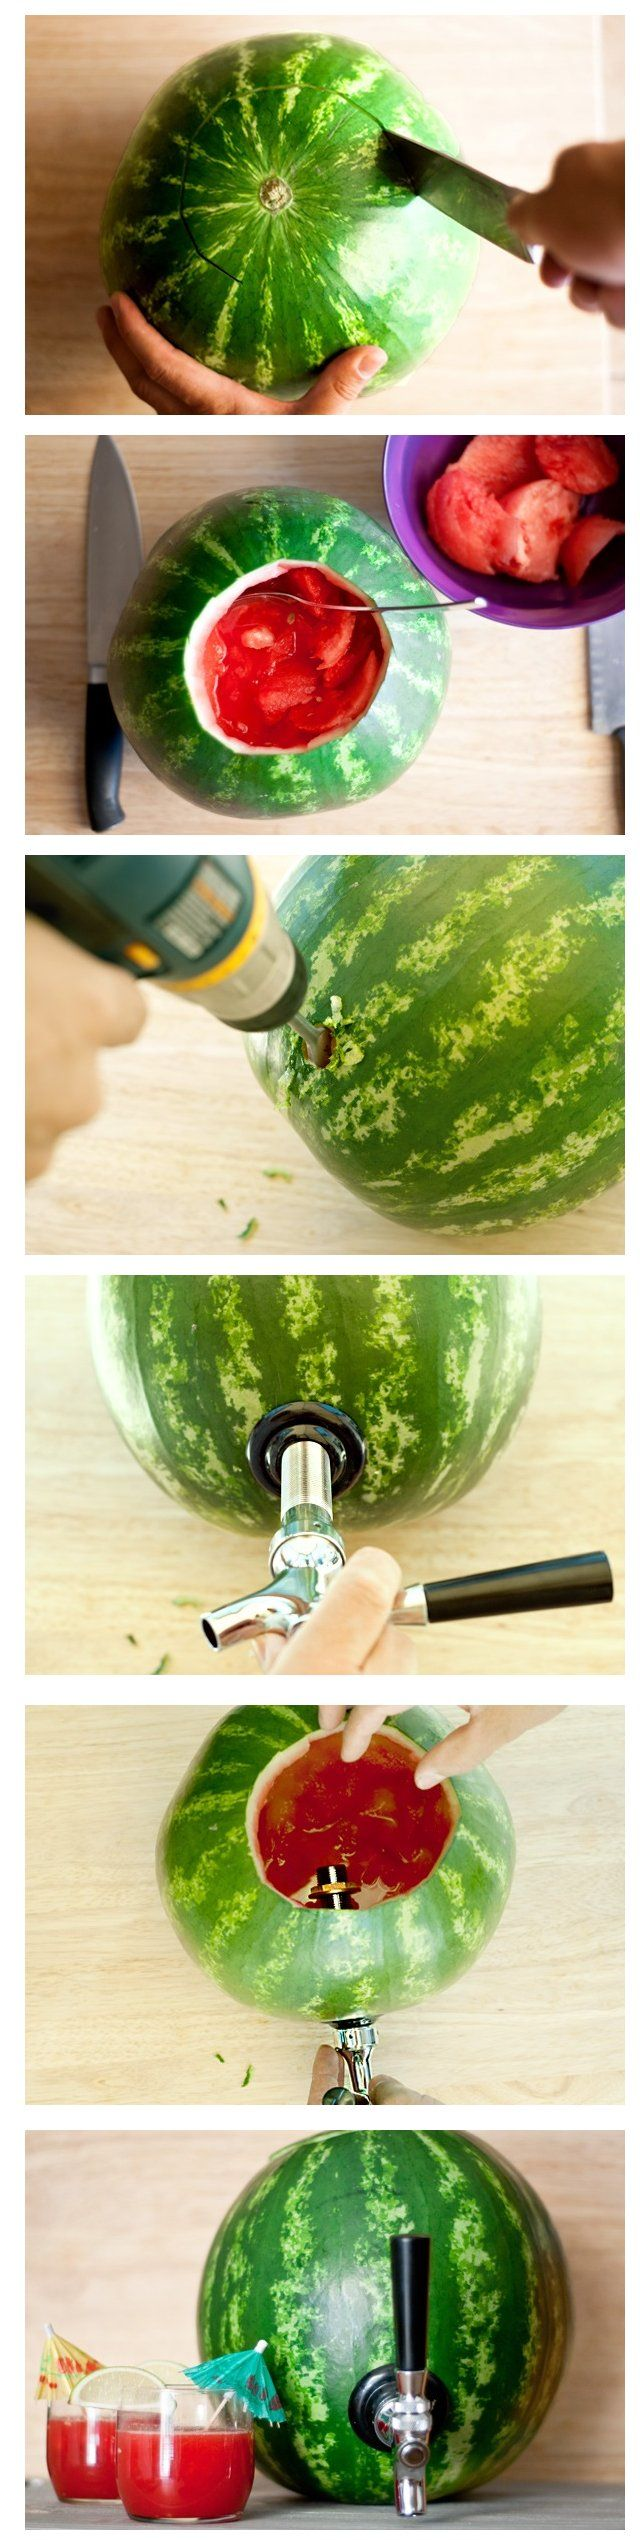 Learn how to make your own Watermelon Cocktail Keg for your next summer gathering! Just fill it with your favorite party beverage, cocktail or fruit punch.